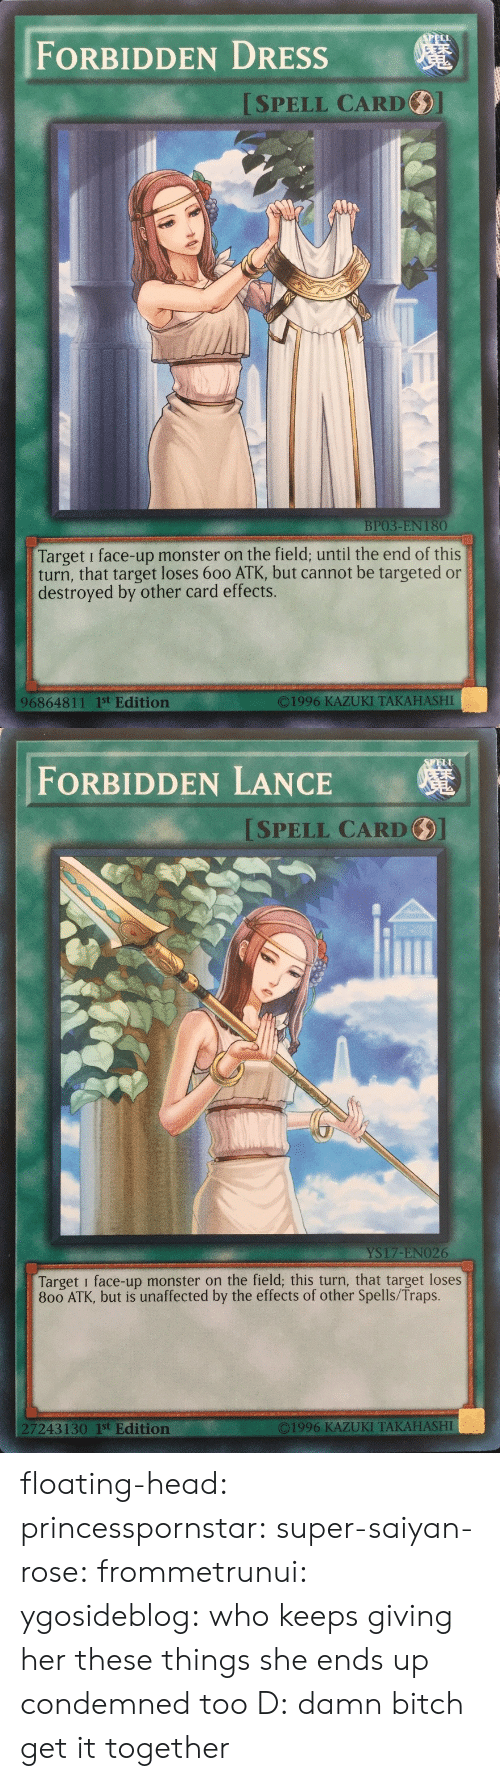 Spells: FORBIDDEN DRESSs  ISPELL CARD  BP03-EN 180  Target i face-up monster on the field; until the end of this  turn, that target loses 600 ATK, but cannot be targeted or  destroyed by other card effects.  O1996 KAZUKI TAKAHASHI  96864811 1st Edition   ELL  FORBIDDEN LANCE  SPELL CARD  YS17-ENO26  Target i face-up monster on the field; this turn, that target loses  800 ATK, but is unaffected by the effects of other Spells/Traps.  7243130 1st Edition  ©1996 KAZUKI TAKAHASHI floating-head:  princesspornstar:  super-saiyan-rose:  frommetrunui:   ygosideblog: who keeps giving her these things   she ends up condemned too D:    damn bitch get it together